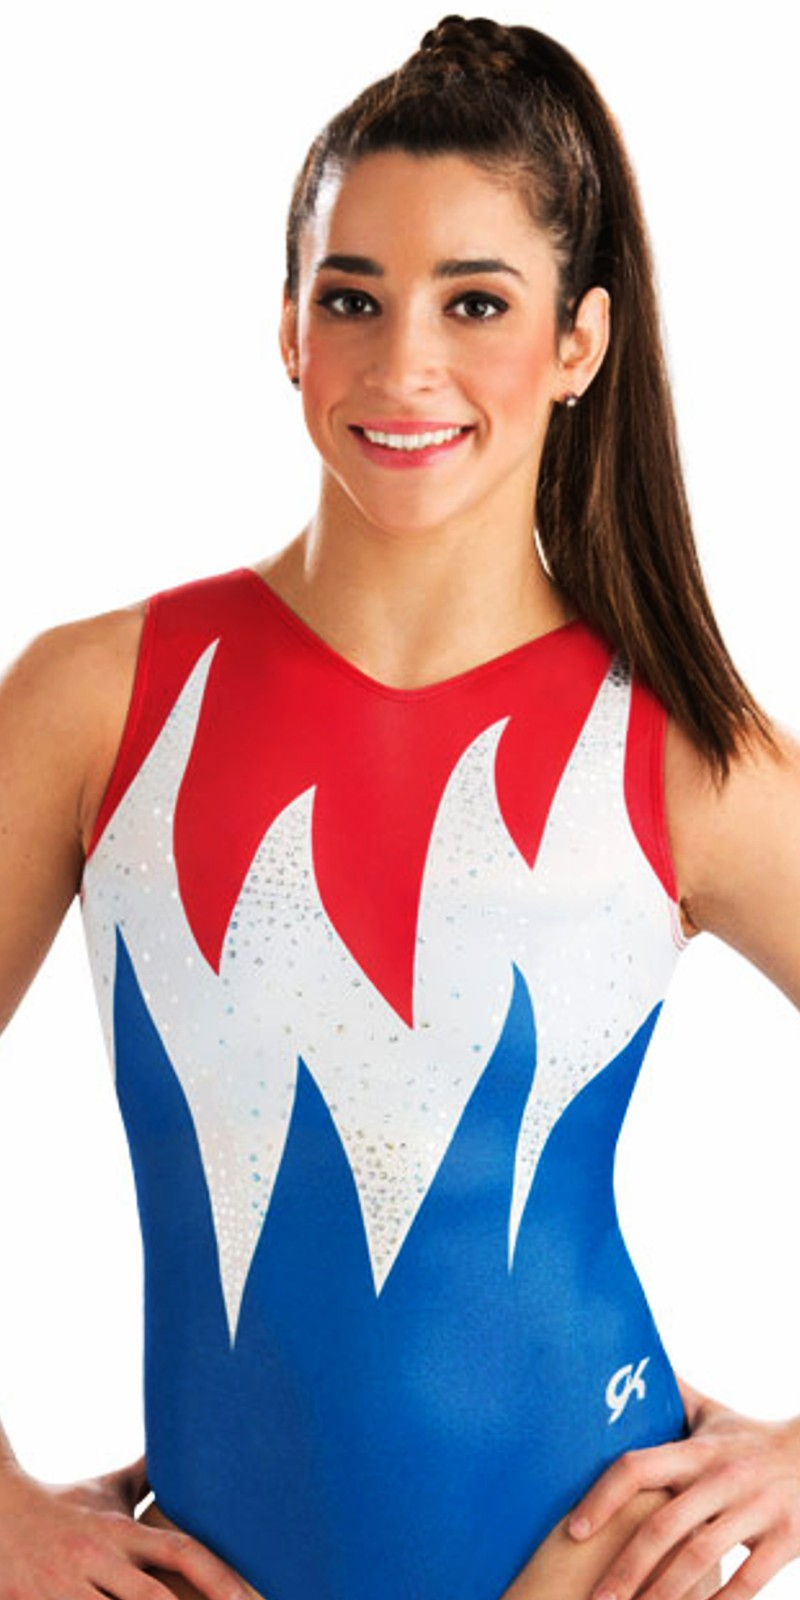 E3165 Iconic Blast From The Past Gymnastics leotard by GK ...